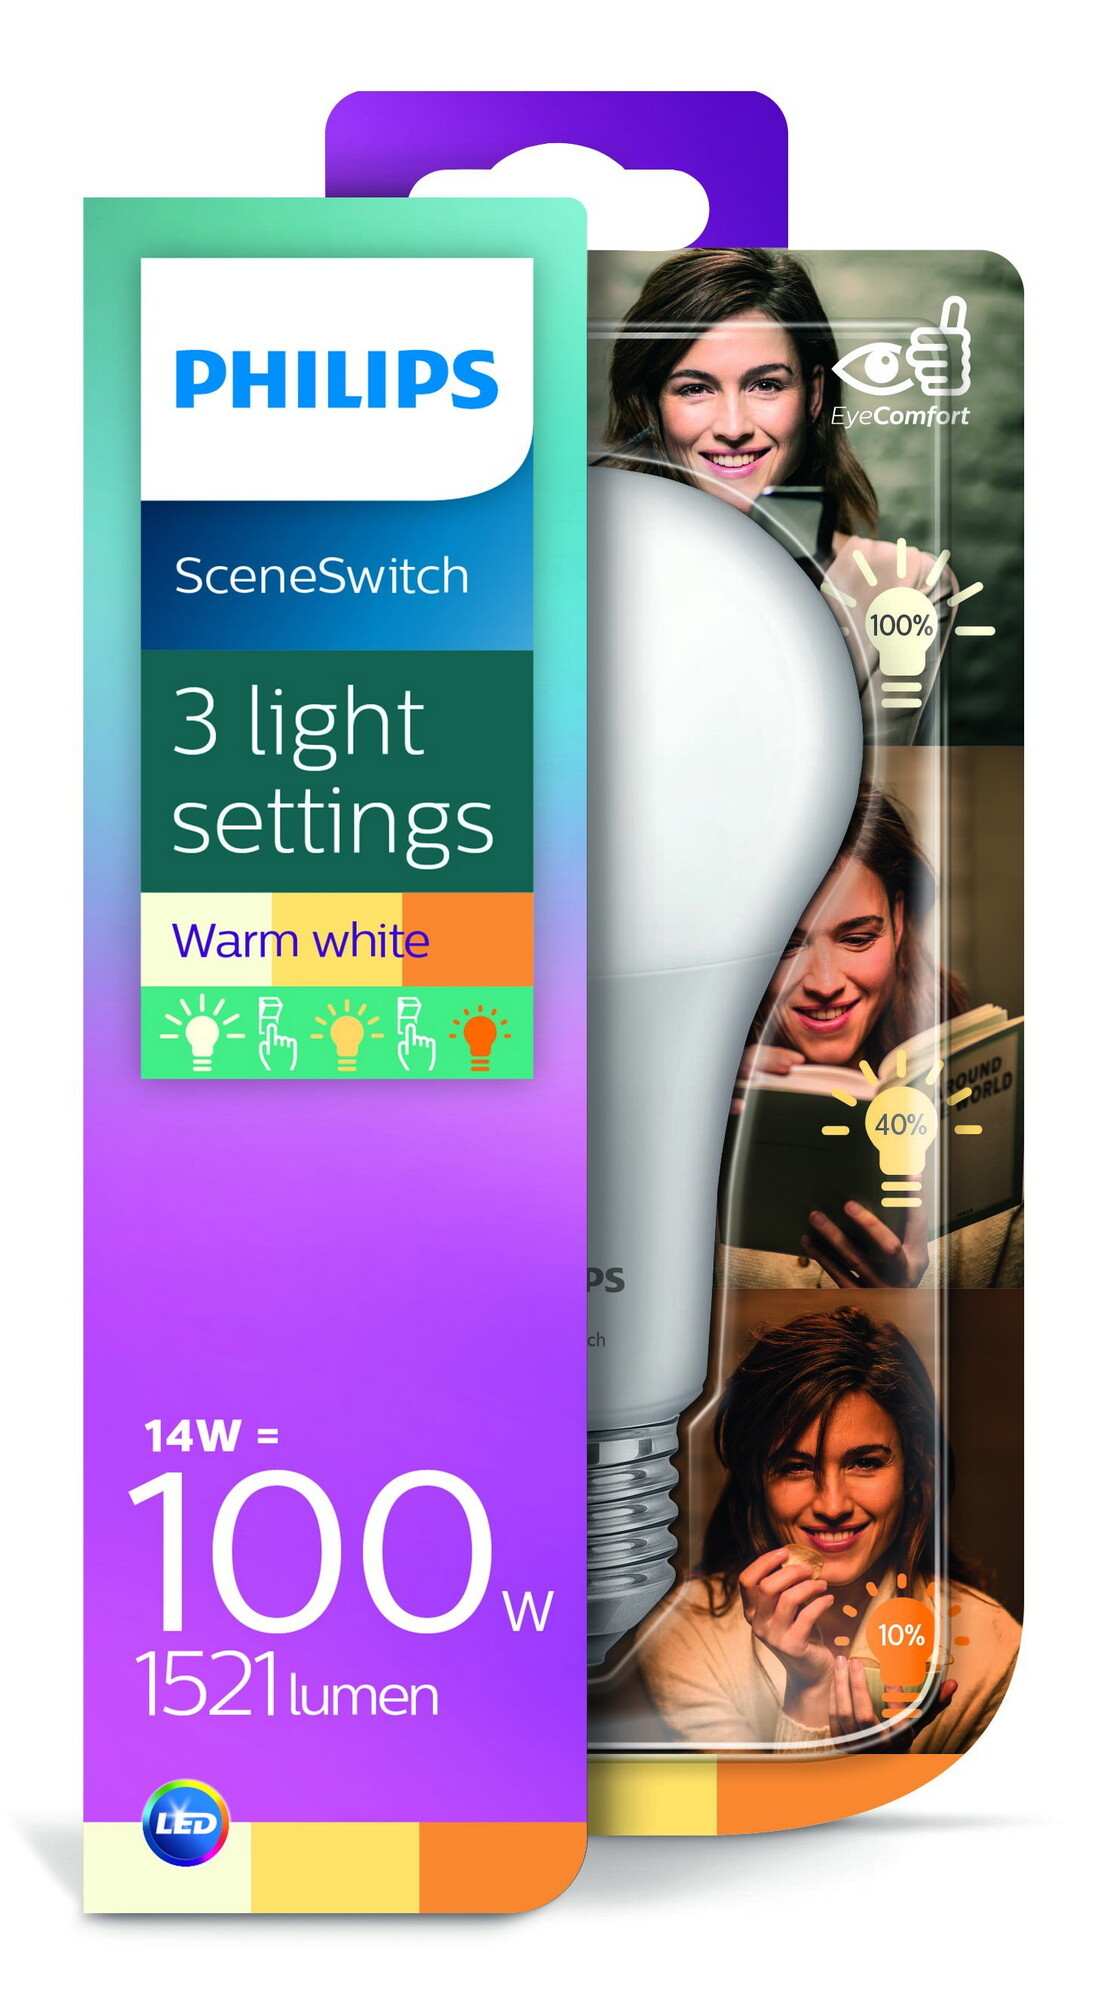 Philips LED SceneSwitch E27 14W 1521lm 2200K + 2500K + 2700K Lamp Frosted